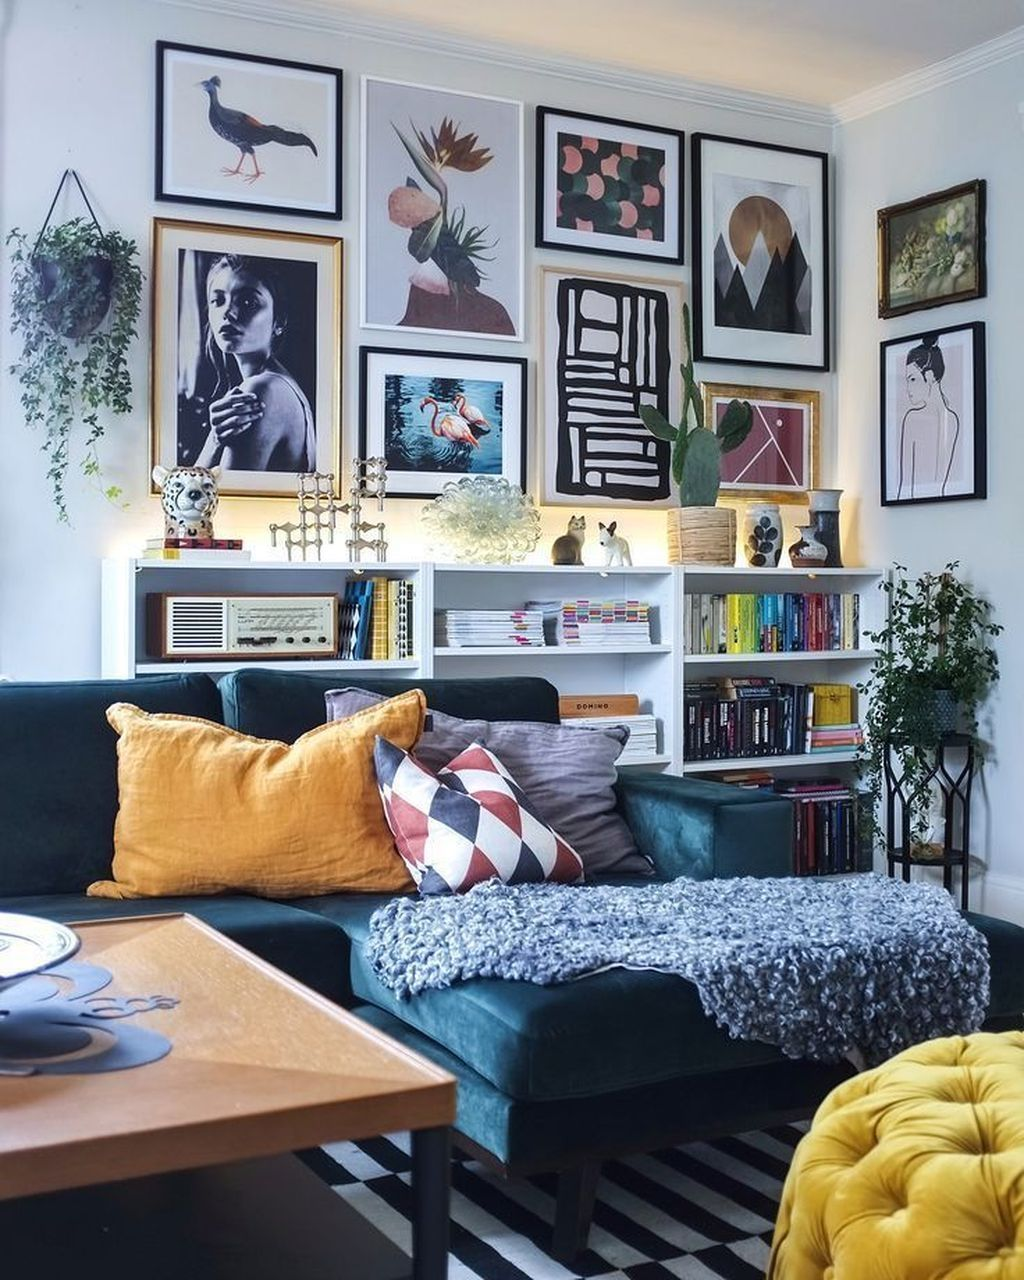 48 Newest Small Living Room Decor Apartment Ideas images